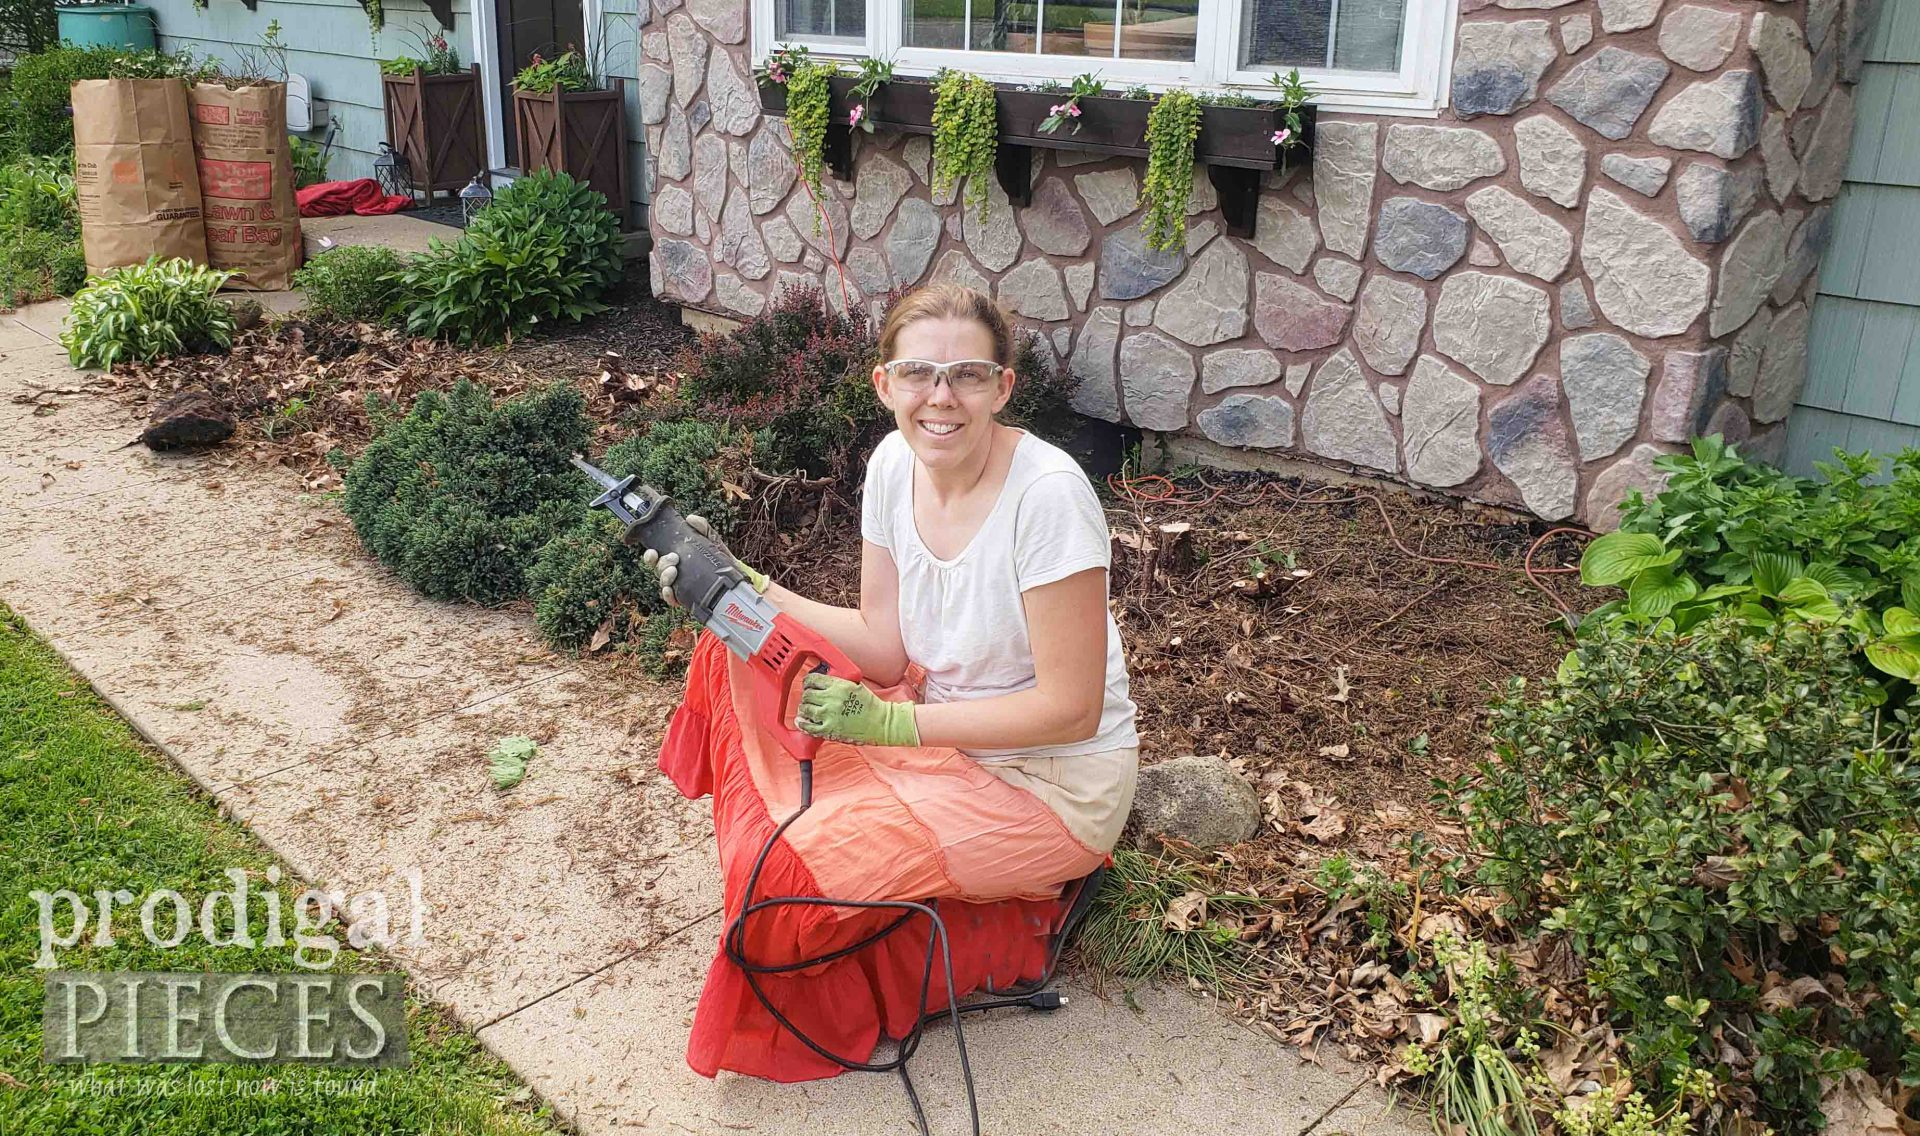 Larissa of Prodigal Pieces in her landscaping adventures | prodigalpieces.com